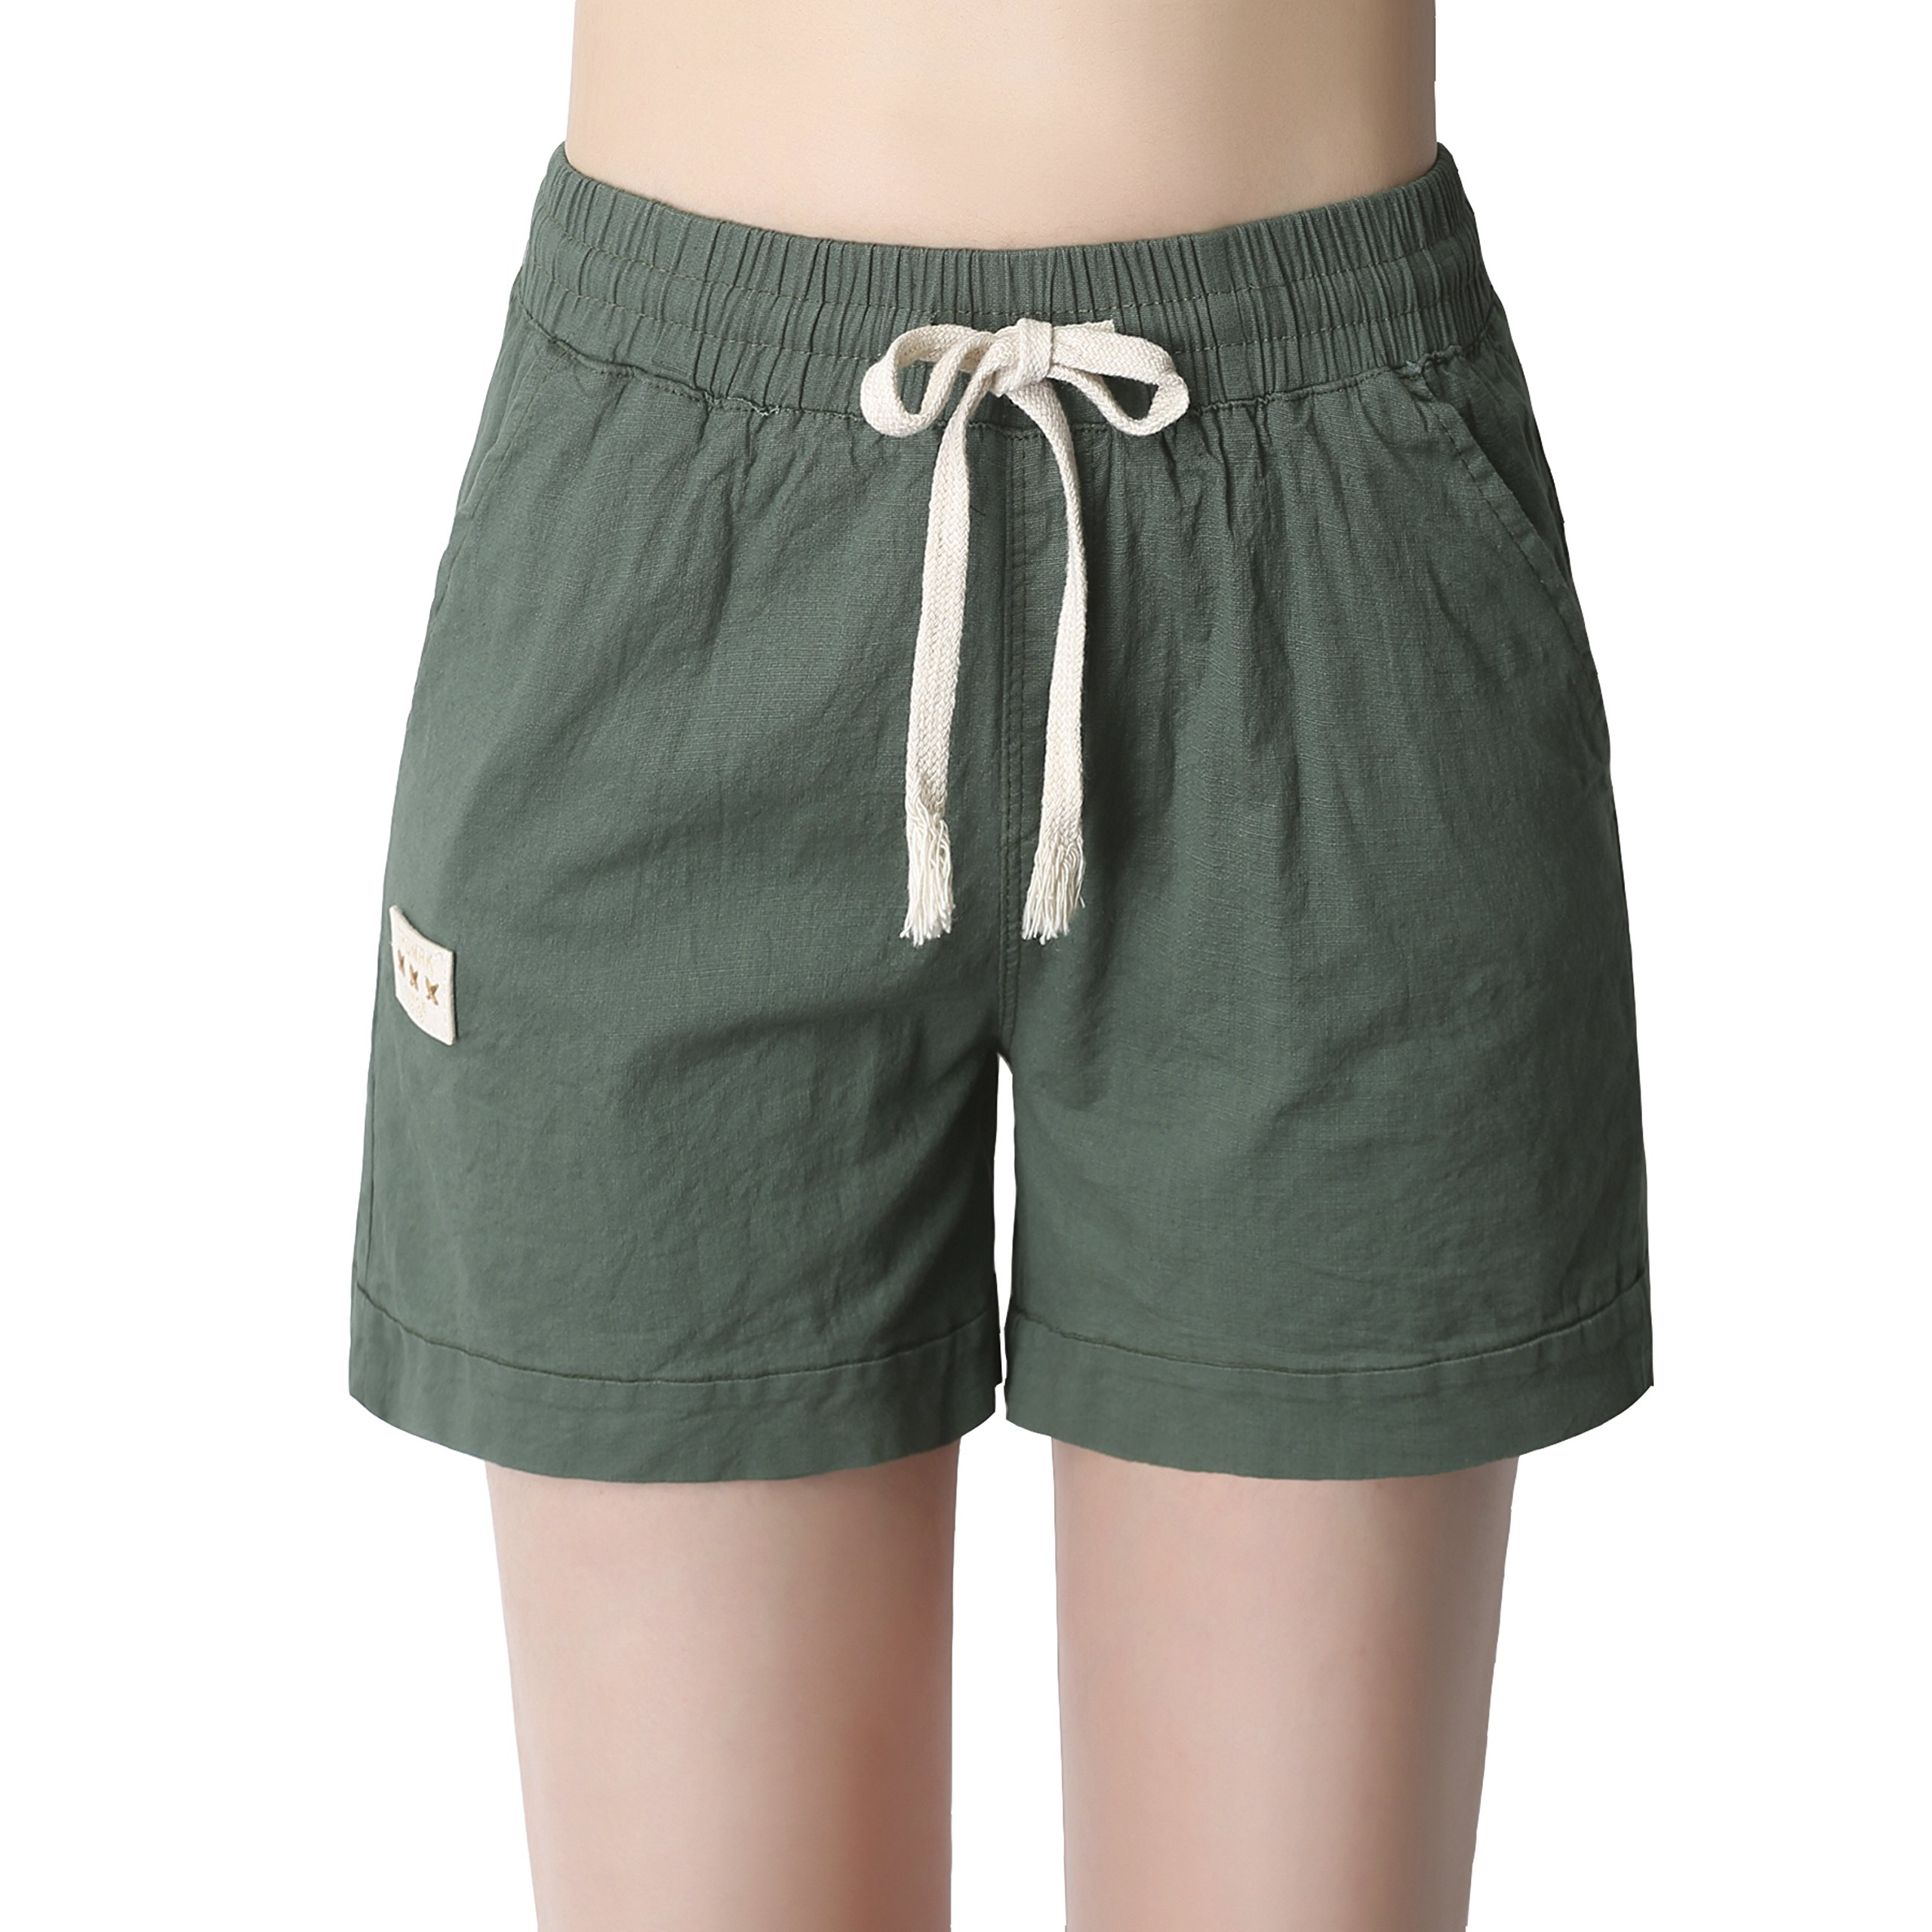 Neasyth Women's Casual Stretch Solid Waist Cute Cotton Linen Drawstring Athletic Comfy Shorts (Army Green, L)